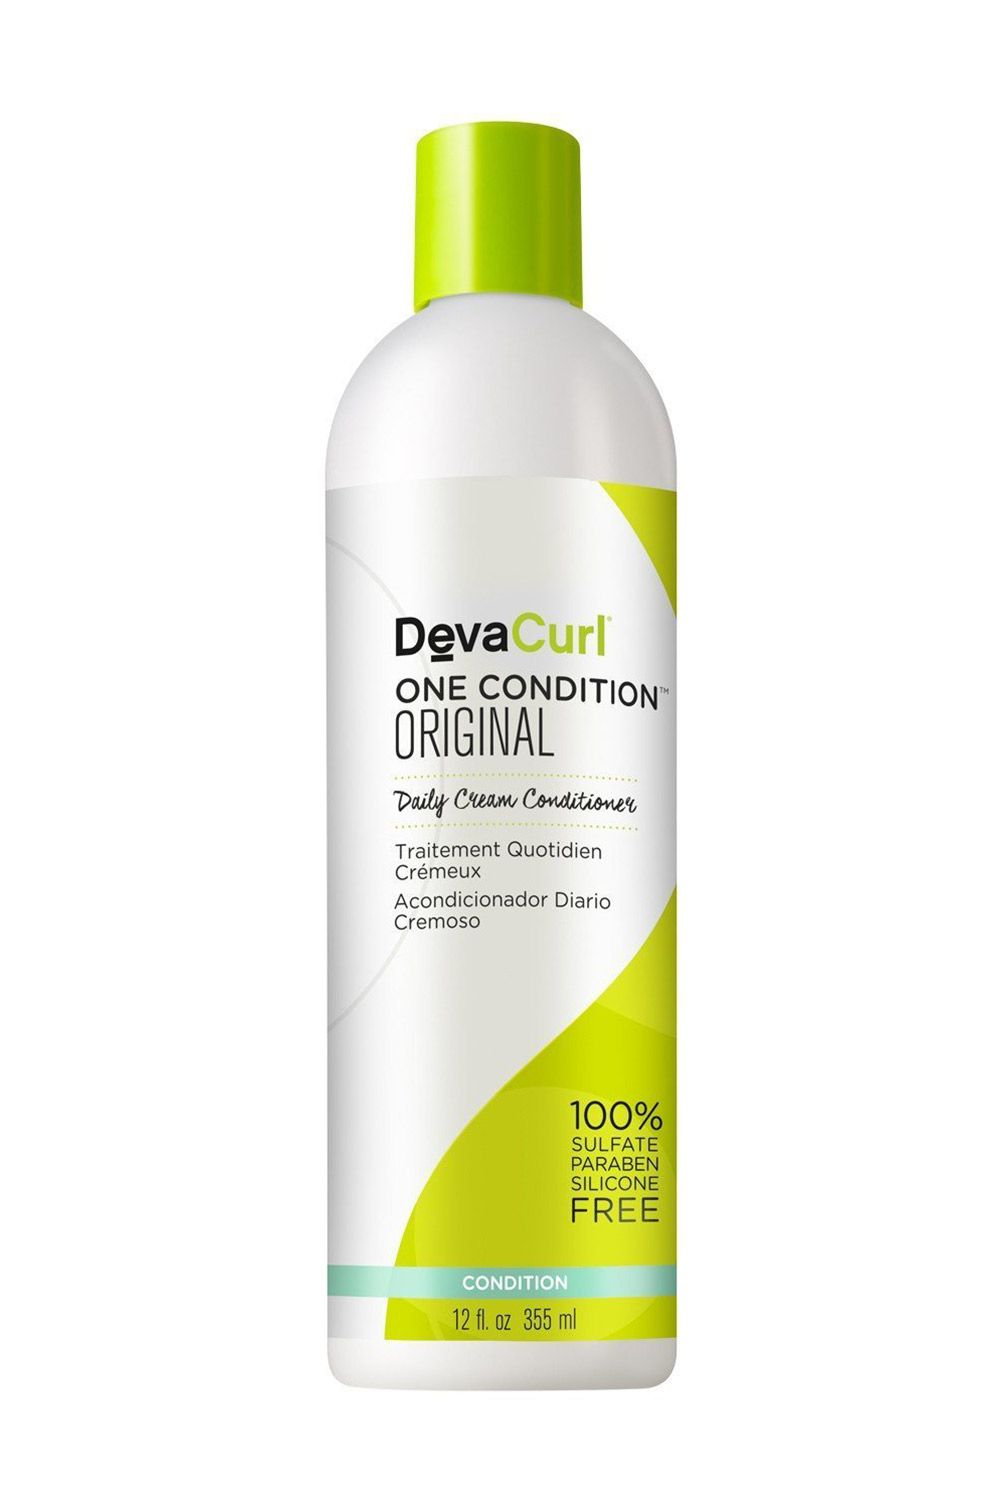 "<p>Unlike most daily curl conditioners, which can feel way too heavy to be used as a leave-in, too, this lemon grass-scented conditioner is surprisingly lightweight, despite its olive-oil base, making it a true rinse-out or leave-in hybrid.</p><p><strong data-redactor-tag=""strong""></strong></p><p><i data-redactor-tag=""i"">DevaCurl One Condition Original Daily Creamy Conditioner, $29</i></p><p><strong data-redactor-tag=""strong"">BUY IT: <a href=""https://www.amazon.com/Ultra-Creamy-Conditioner-Condition-32-Ounces/dp/B000TK99NU"">amazon.com</a>.</strong></p>"